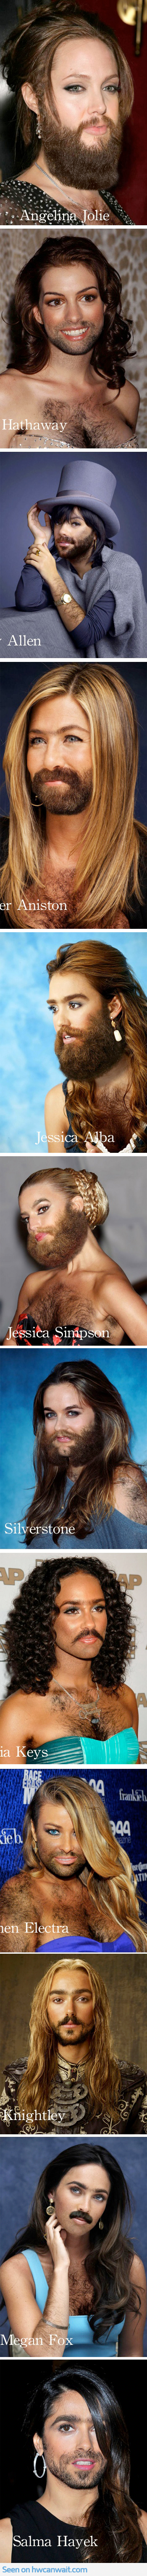 celebritybeards